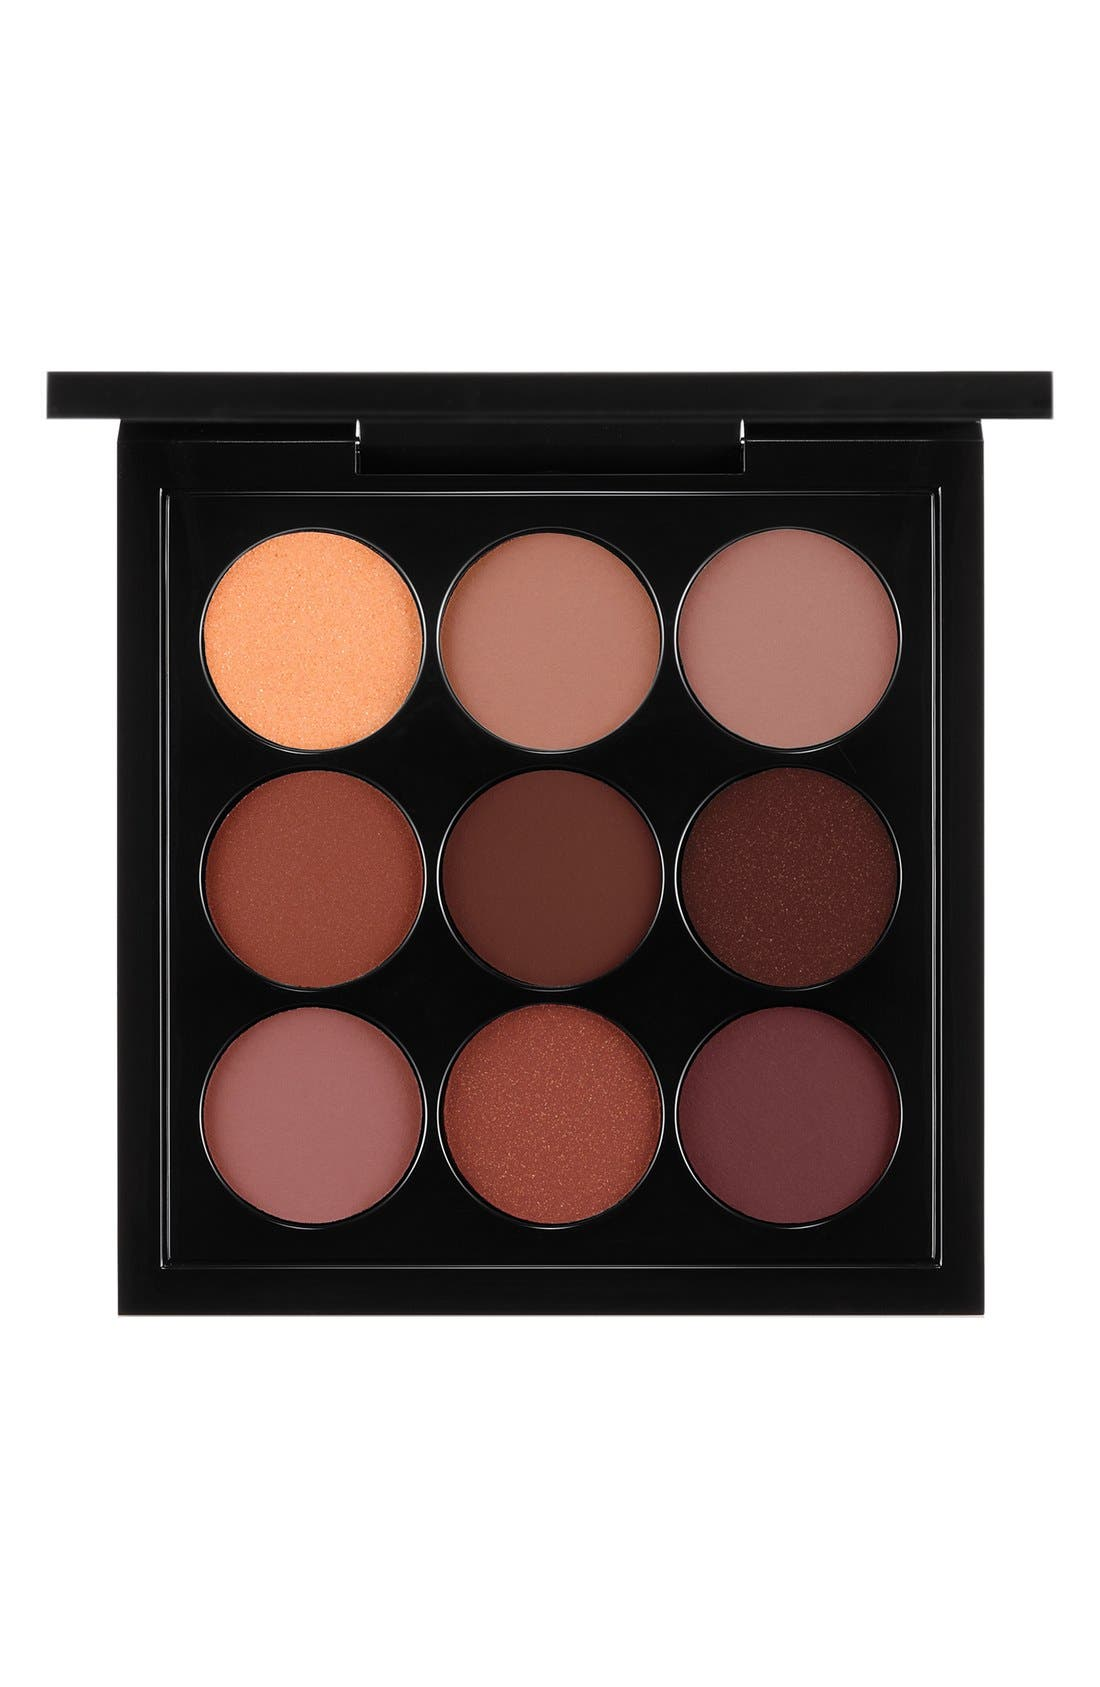 MAC Burgundy Times Nine Eyeshadow Palette ($53 Value)